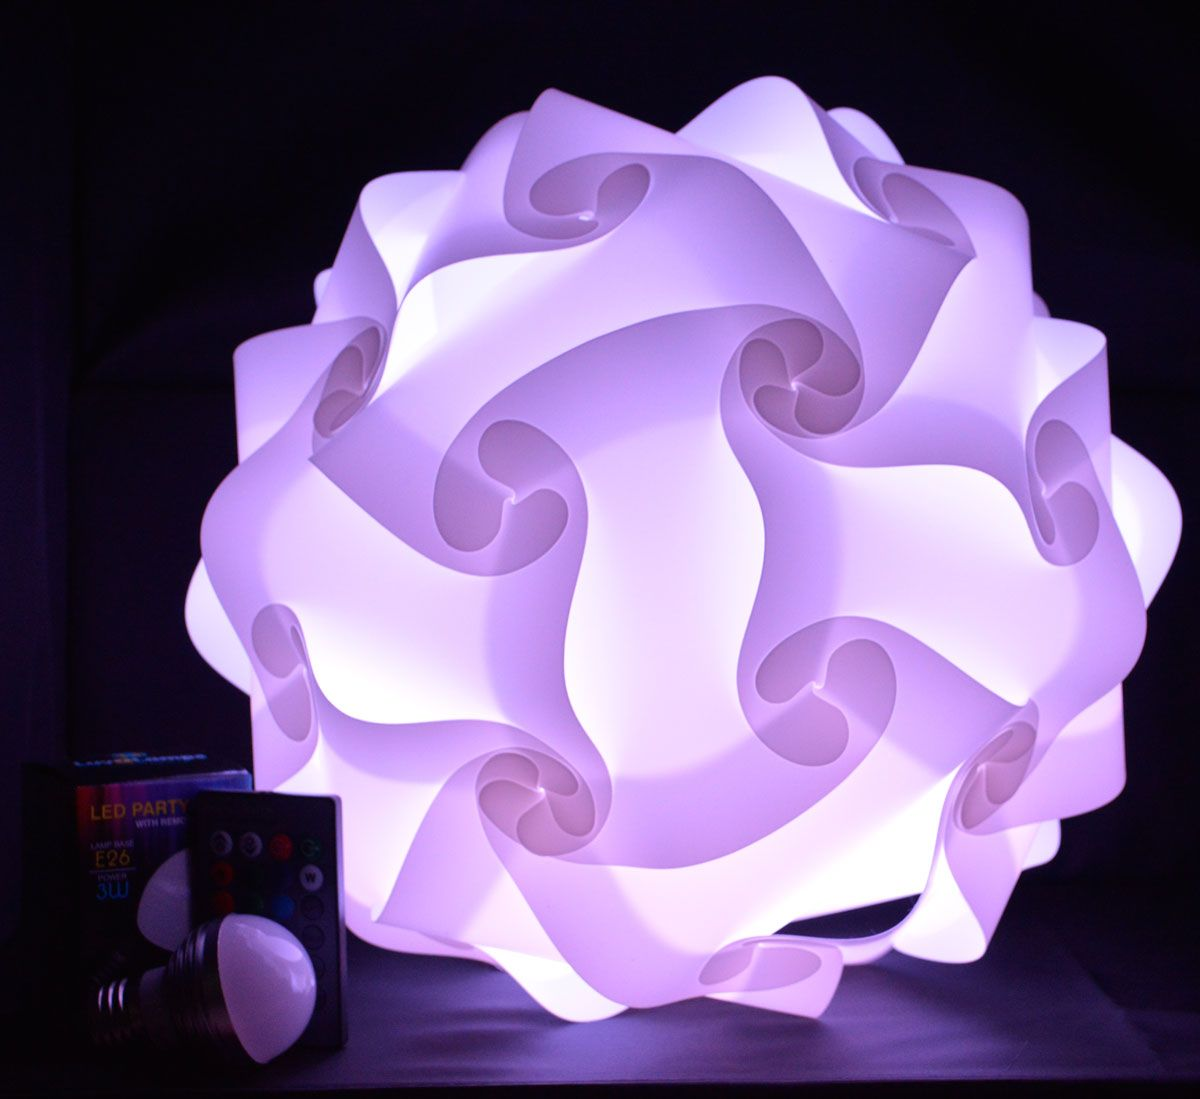 Luvalamps 3d Puzzle Lights Puzzle Lights Infinity Lights Crafts